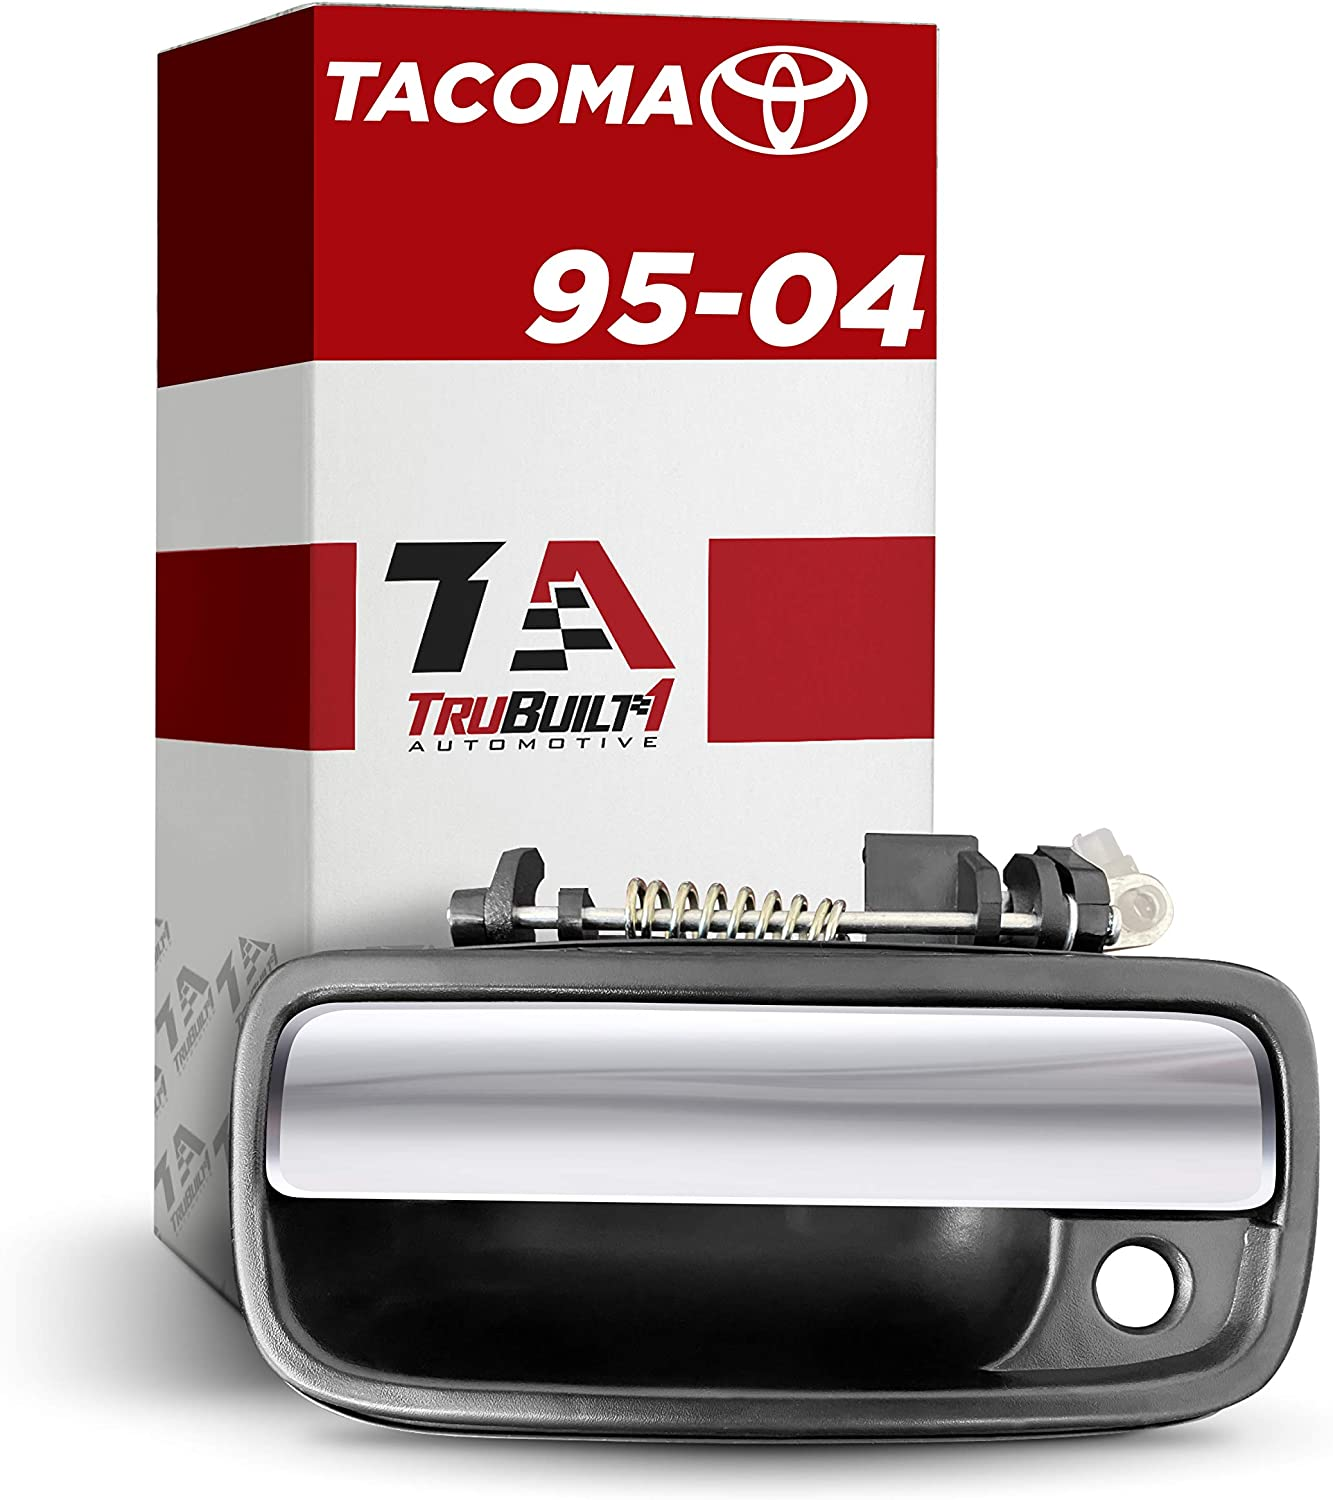 T1A Exterior Door Handle Replacement 1995-2004 Denver Overseas parallel import regular item Mall Tacoma for Toyota